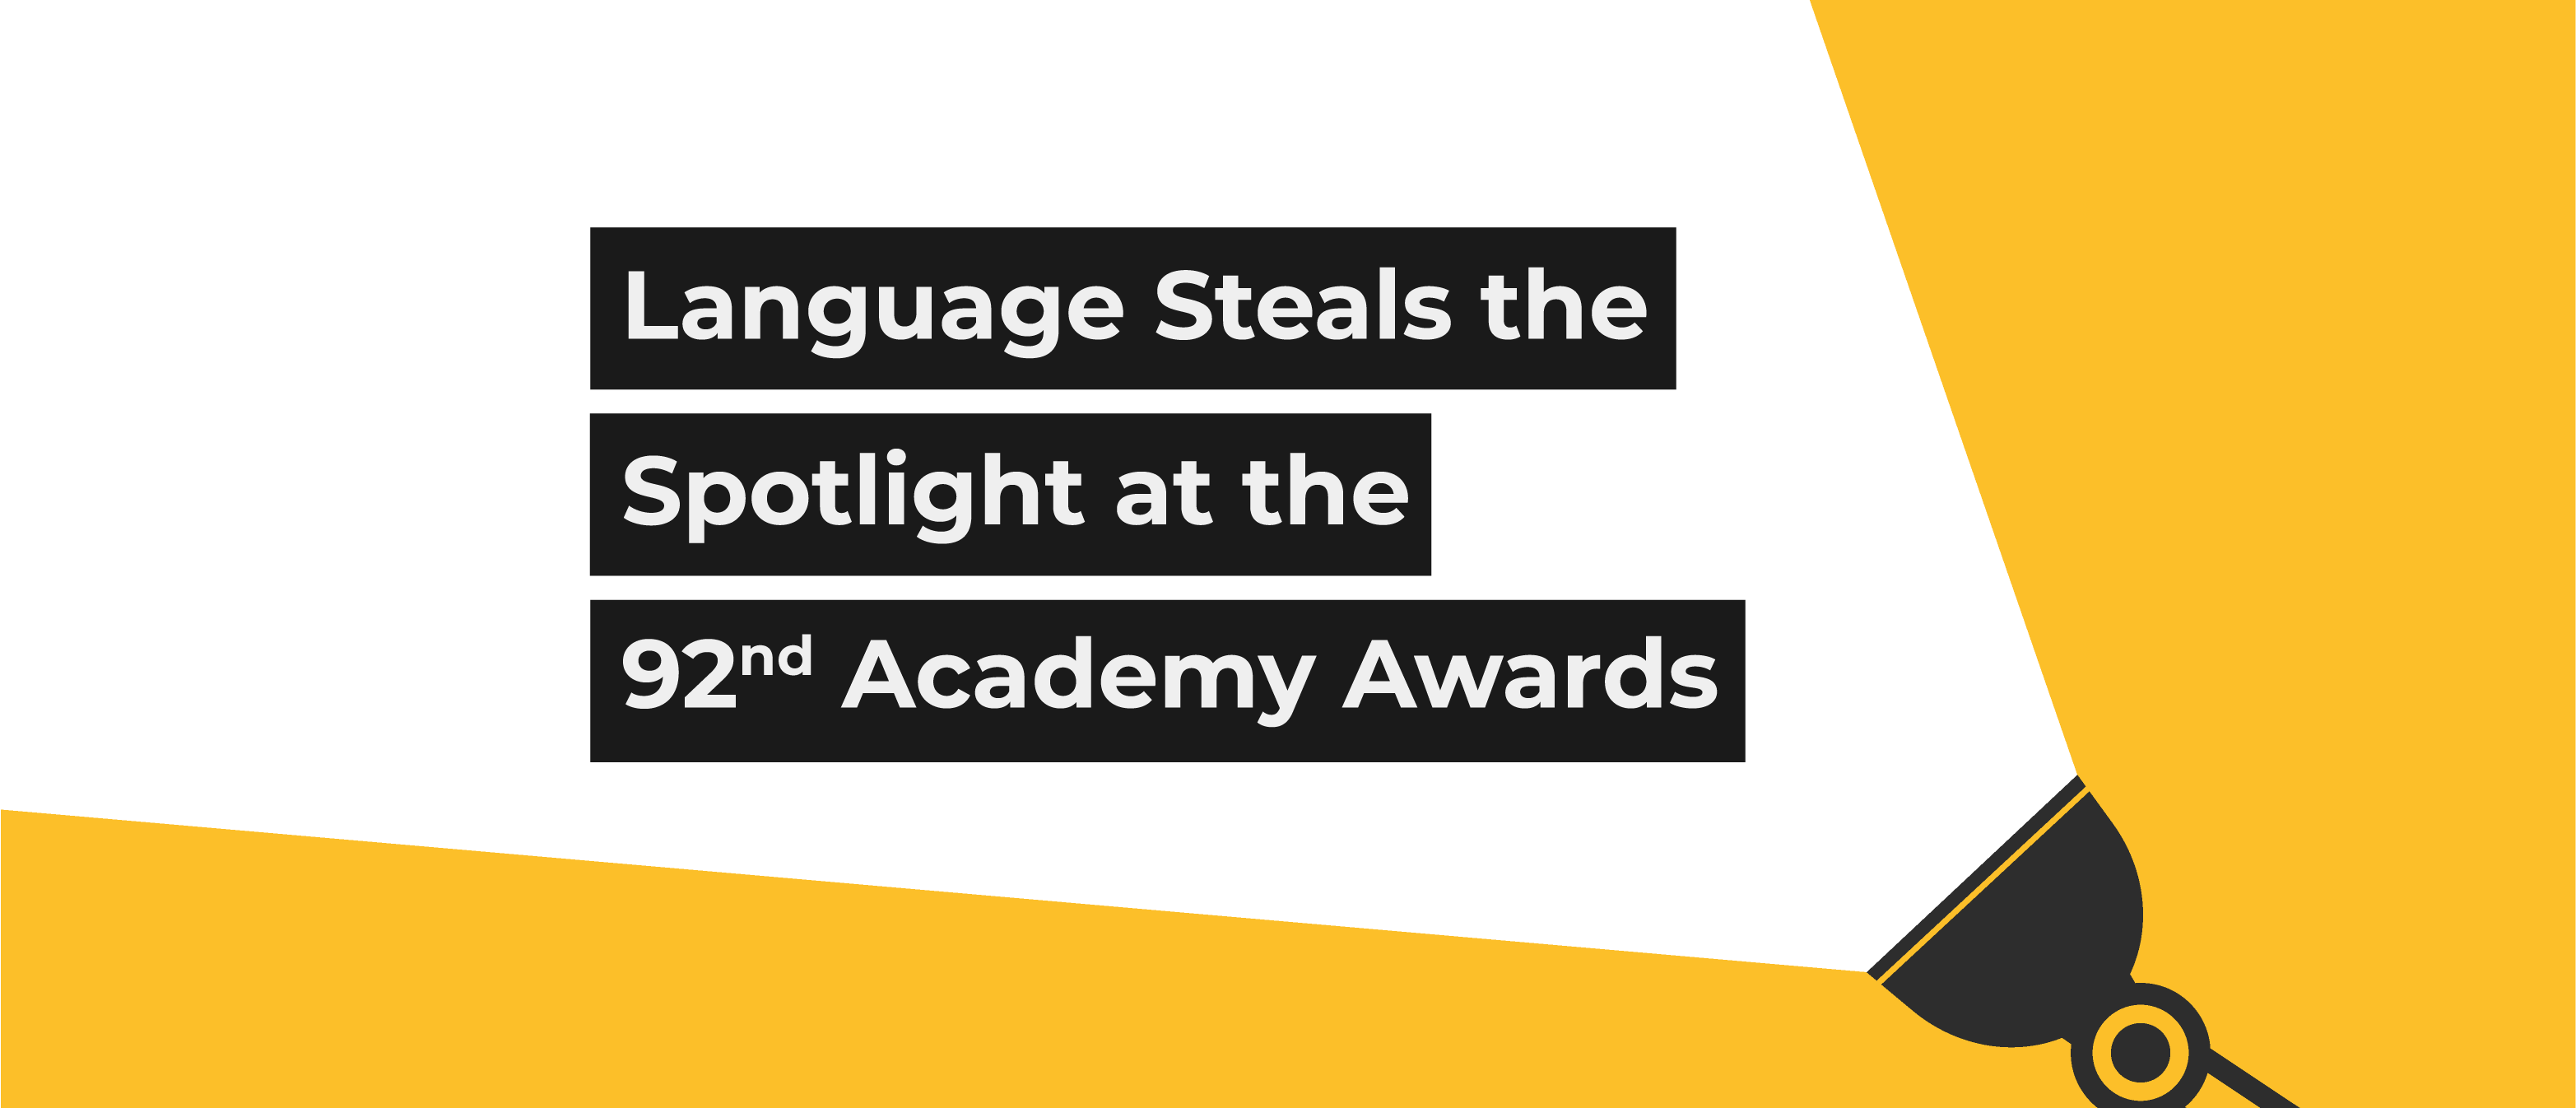 Language Steals the Spotlight at the 92nd Academy Awards